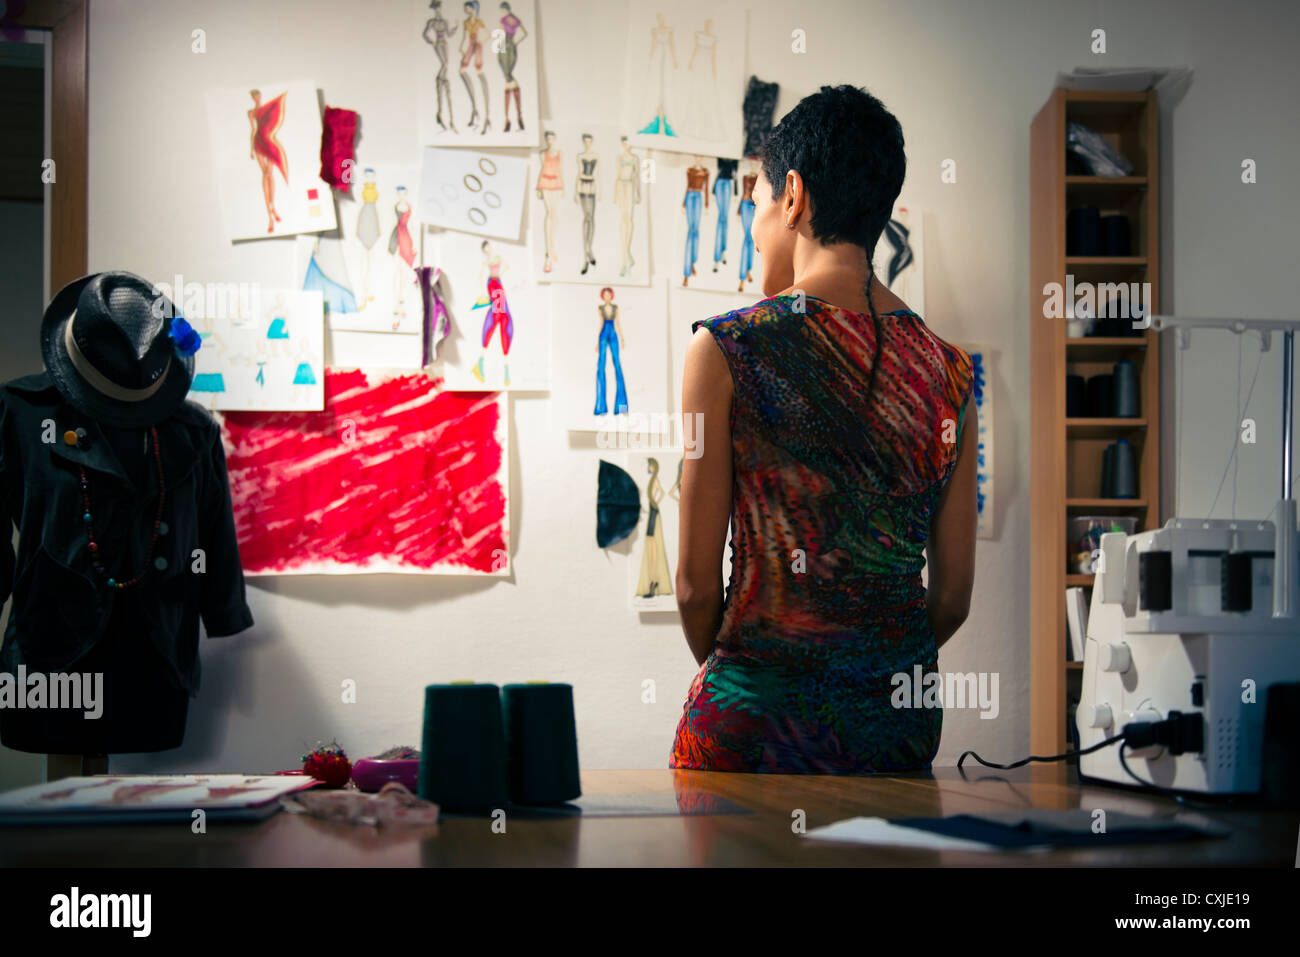 Confident entrepreneur, hispanic young woman working as fashion designer and dressmaker in atelier - Stock Image